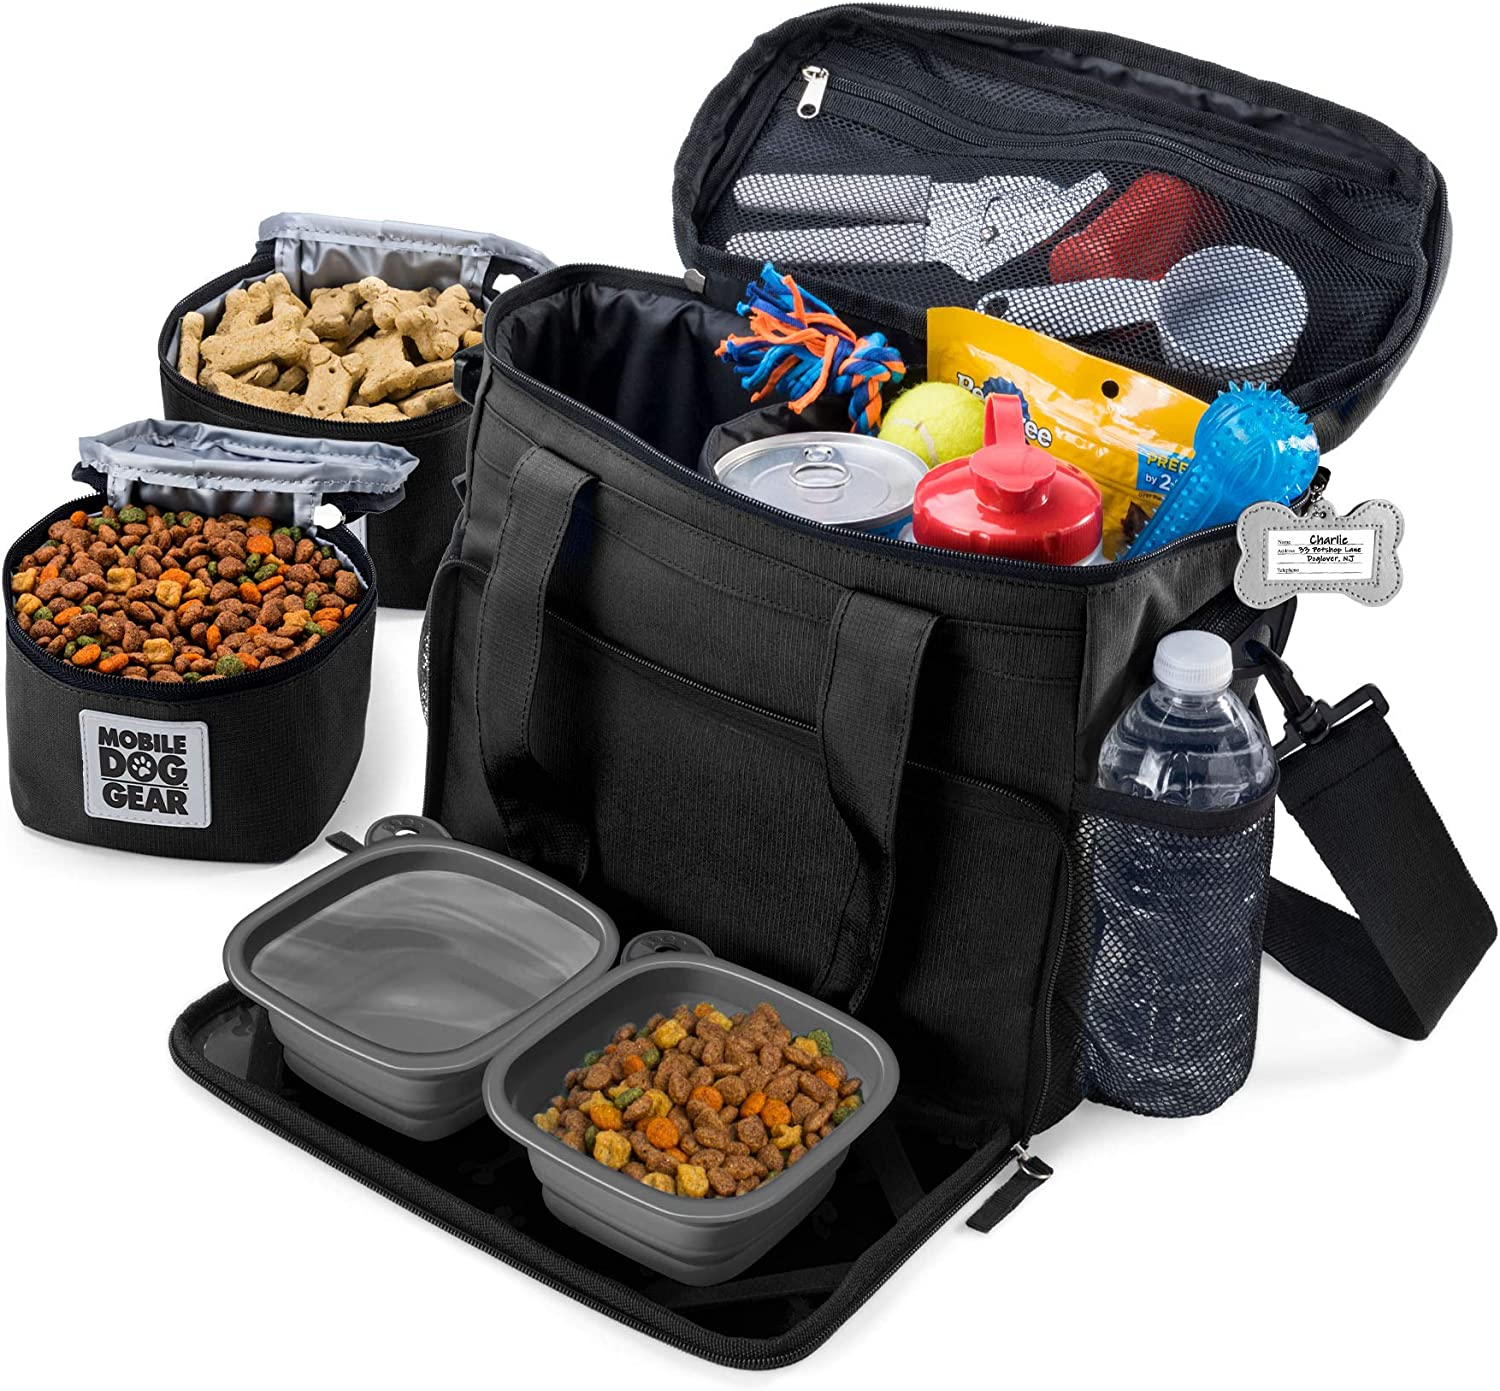 Mobile Dog Gear Week Away Bag Small Dogs Black